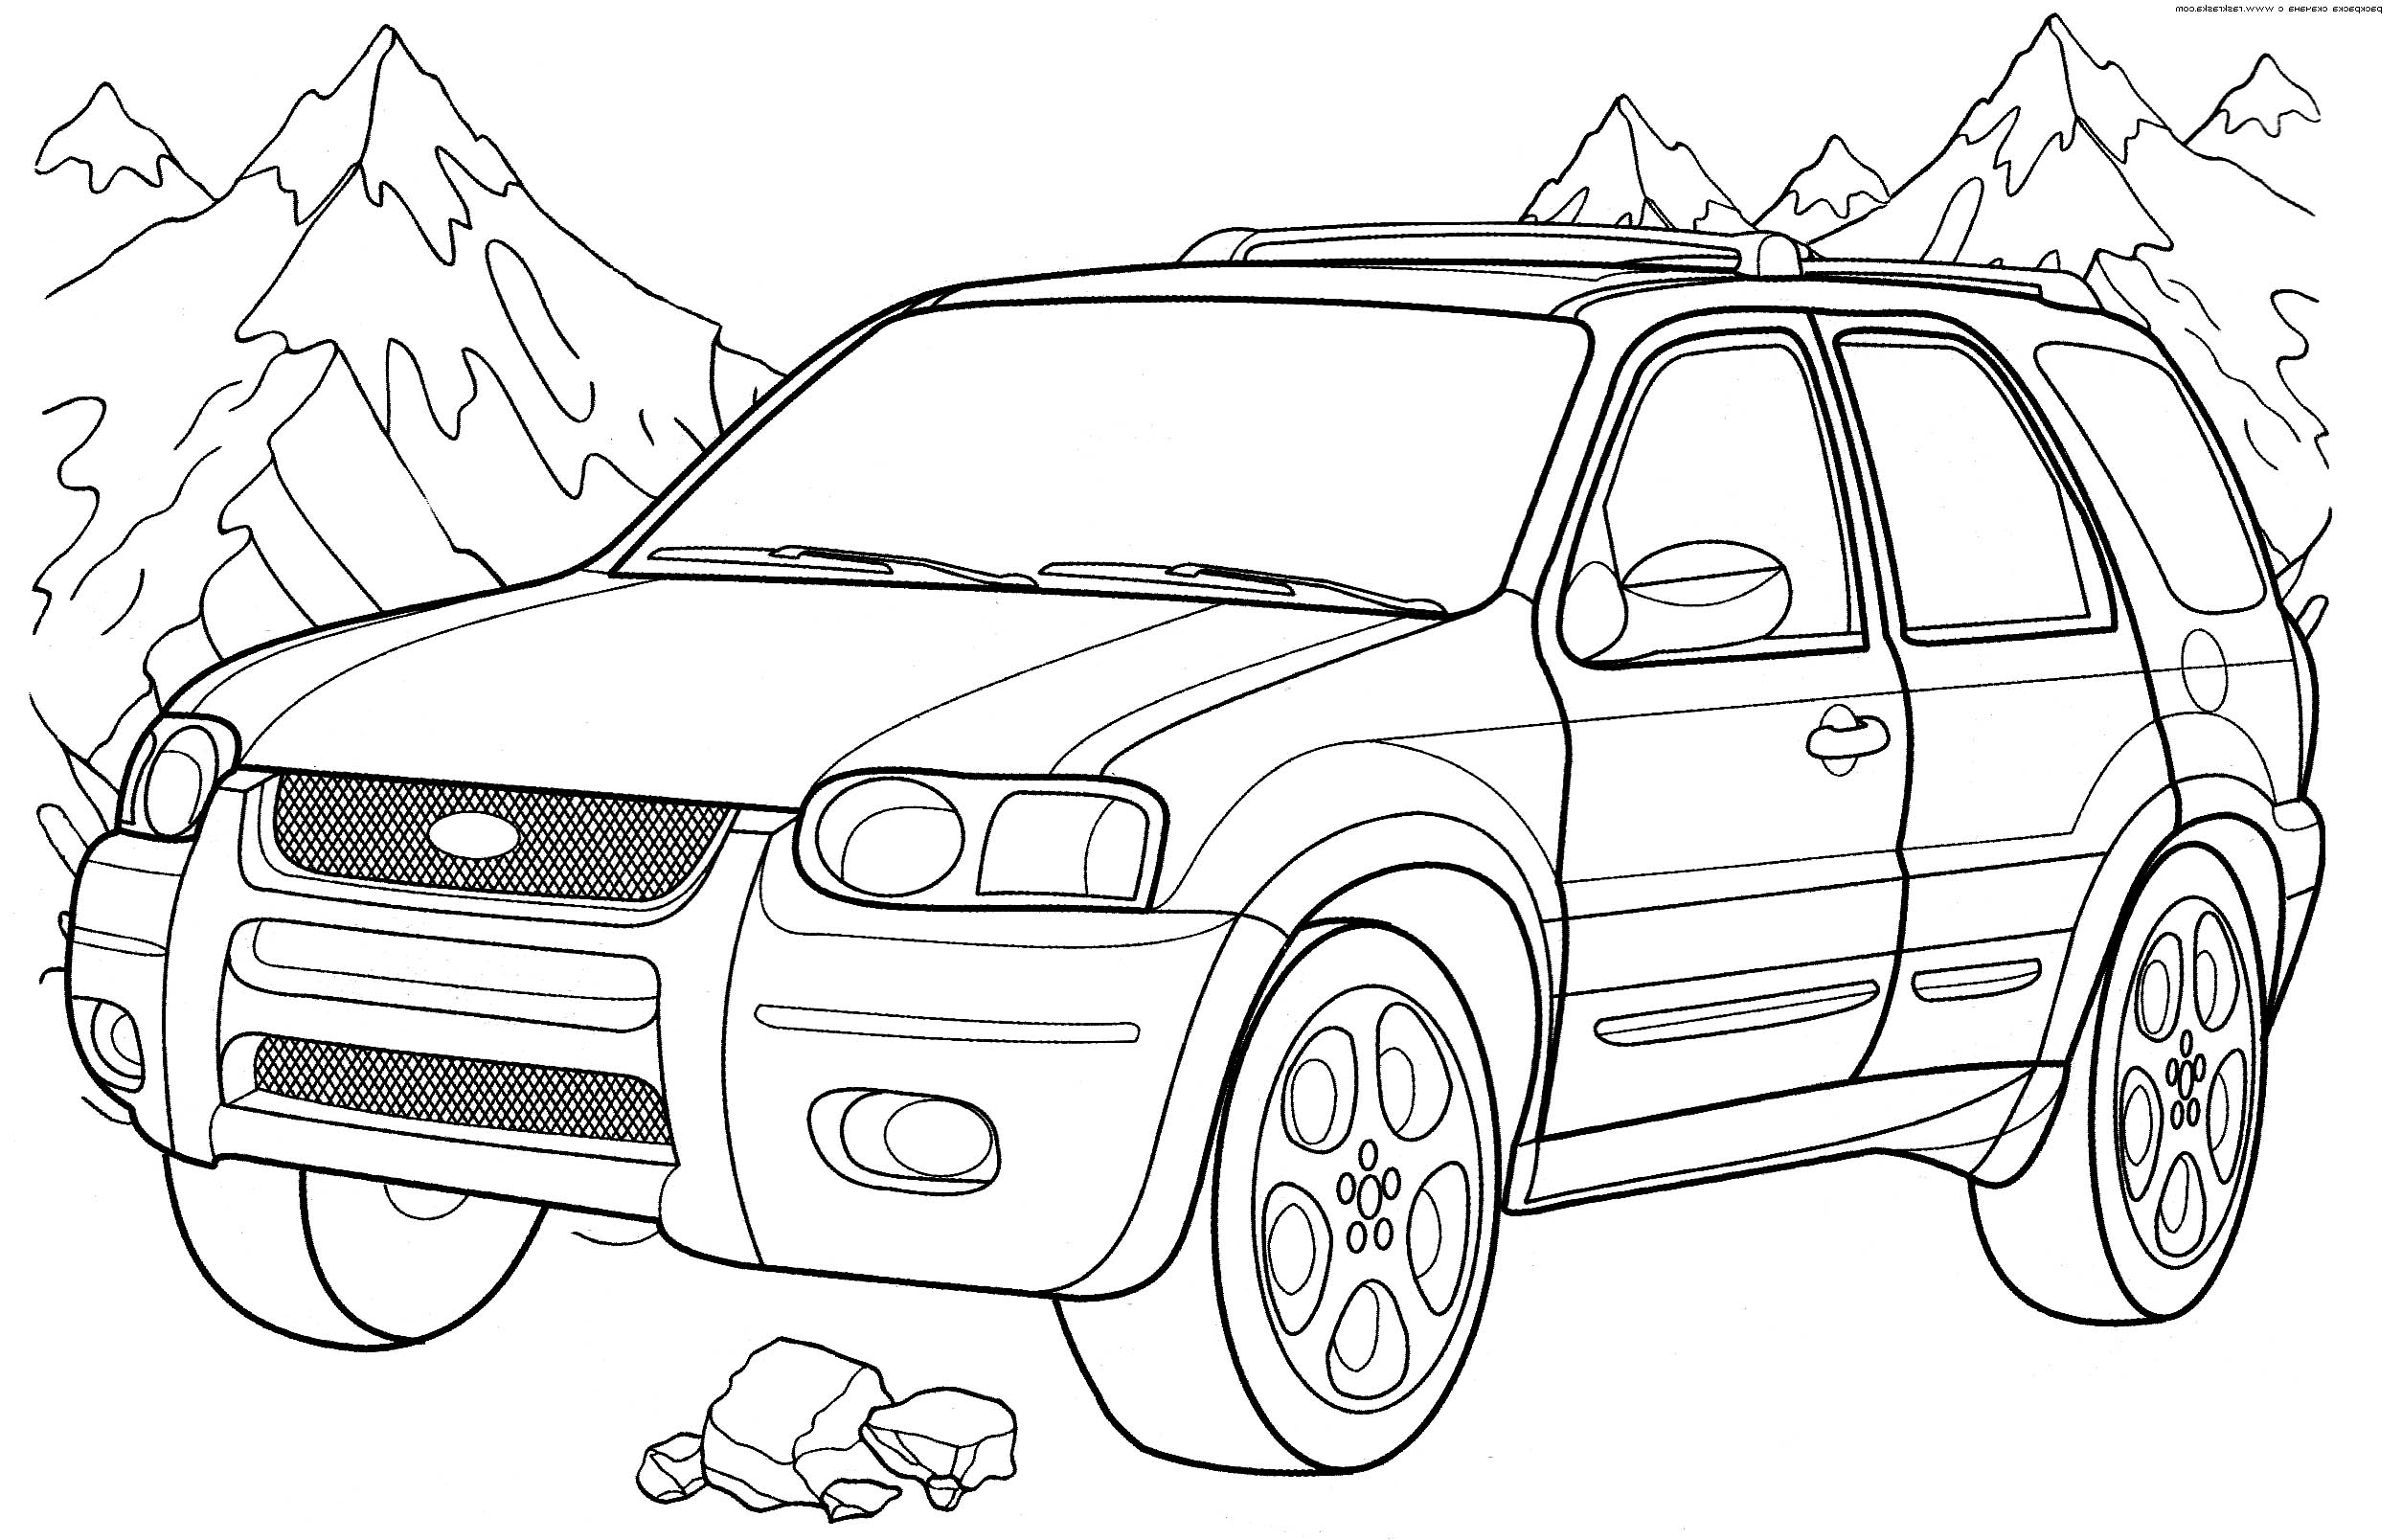 car coloring pages printable for free cars the movie coloring pages to print free coloring sheets for printable free car coloring pages